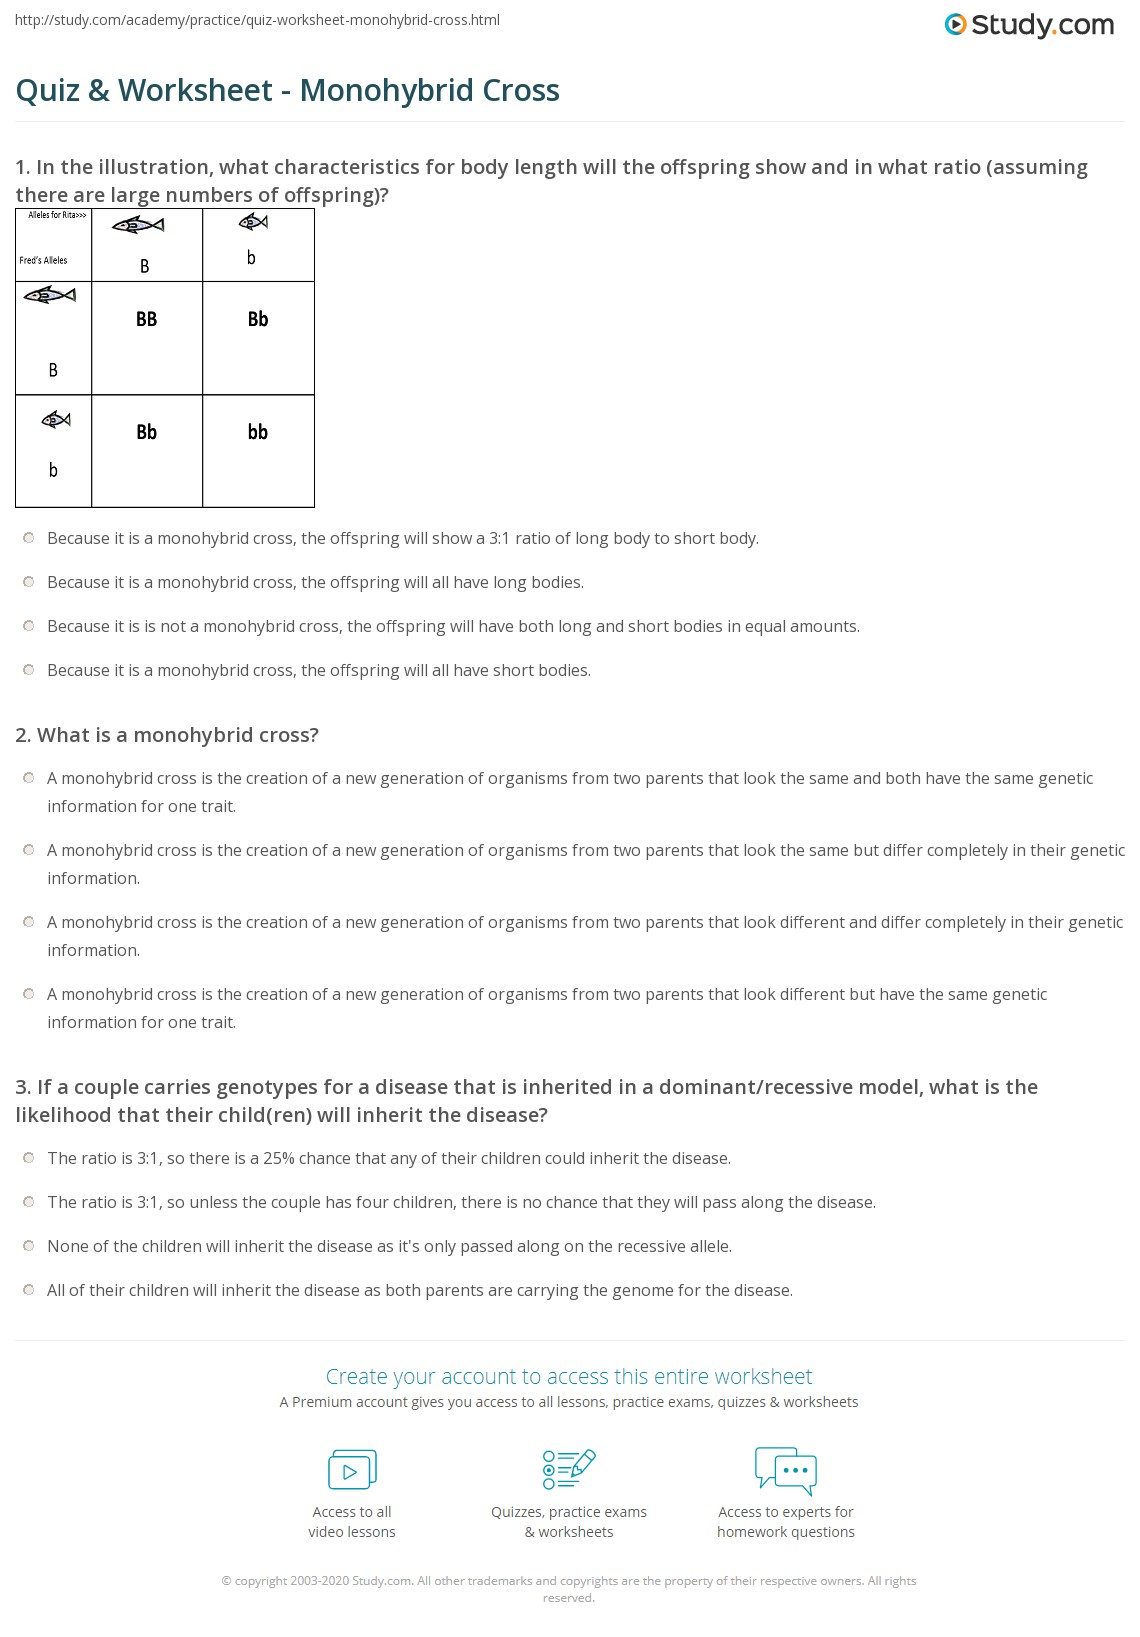 Monohybrid Cross Worksheets | ABITLIKETHIS